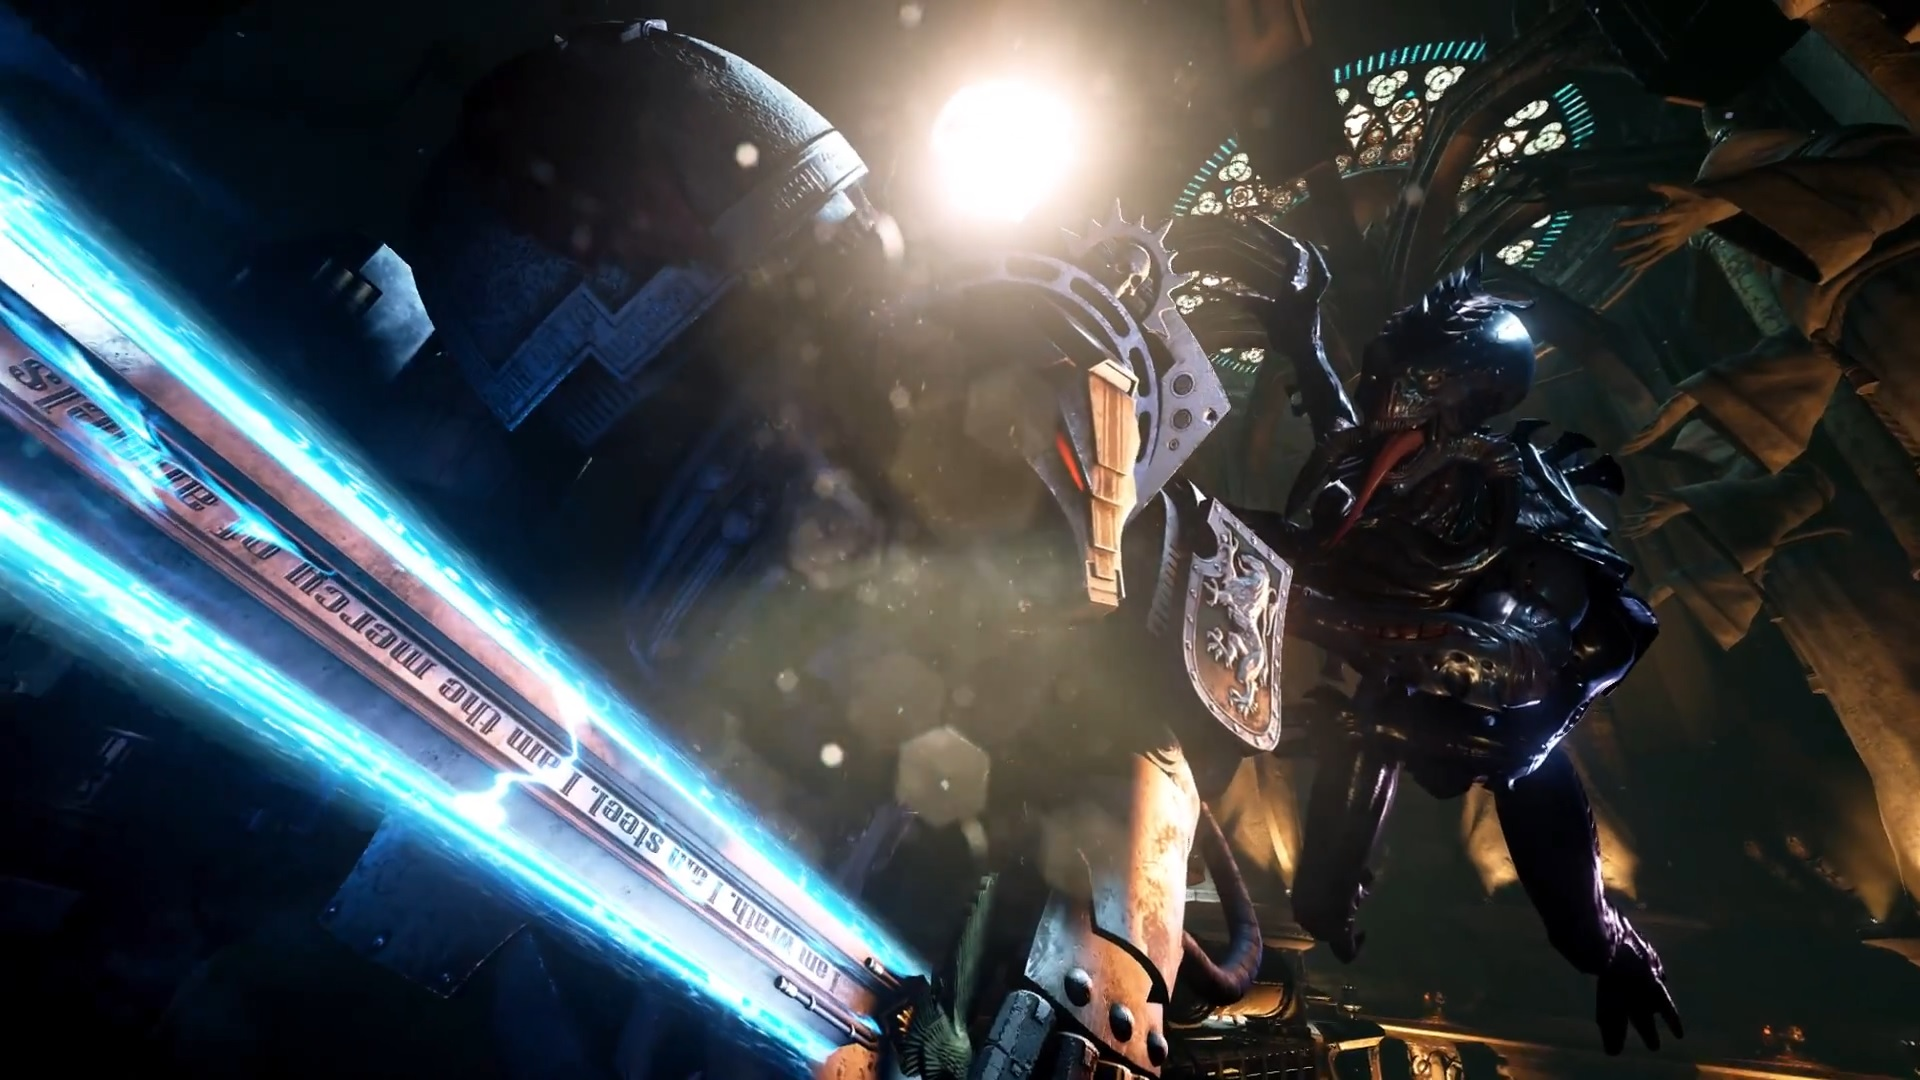 Space Hulk Deathwing Screenshots Image 5901